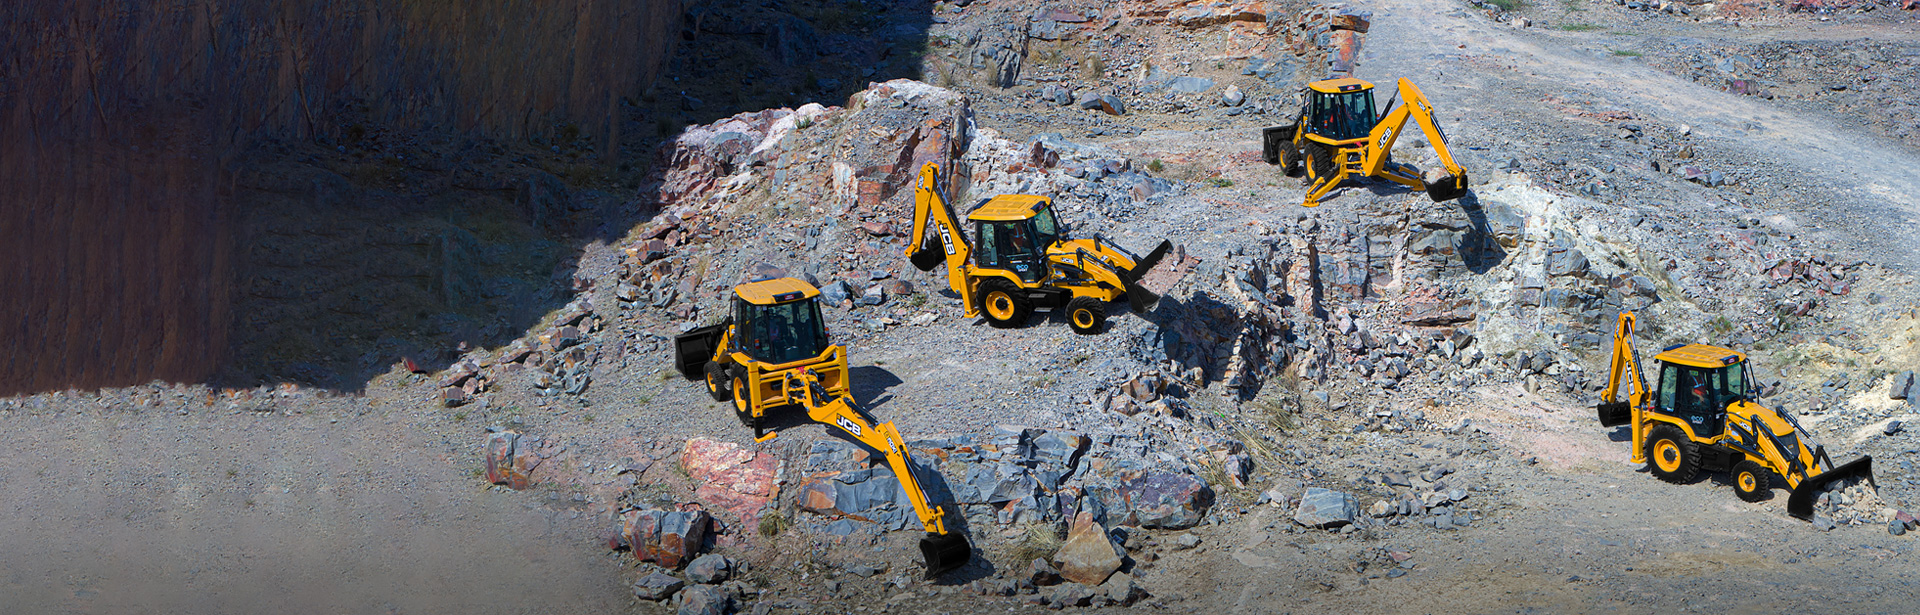 JCB Backhoe Loaders Vadodara